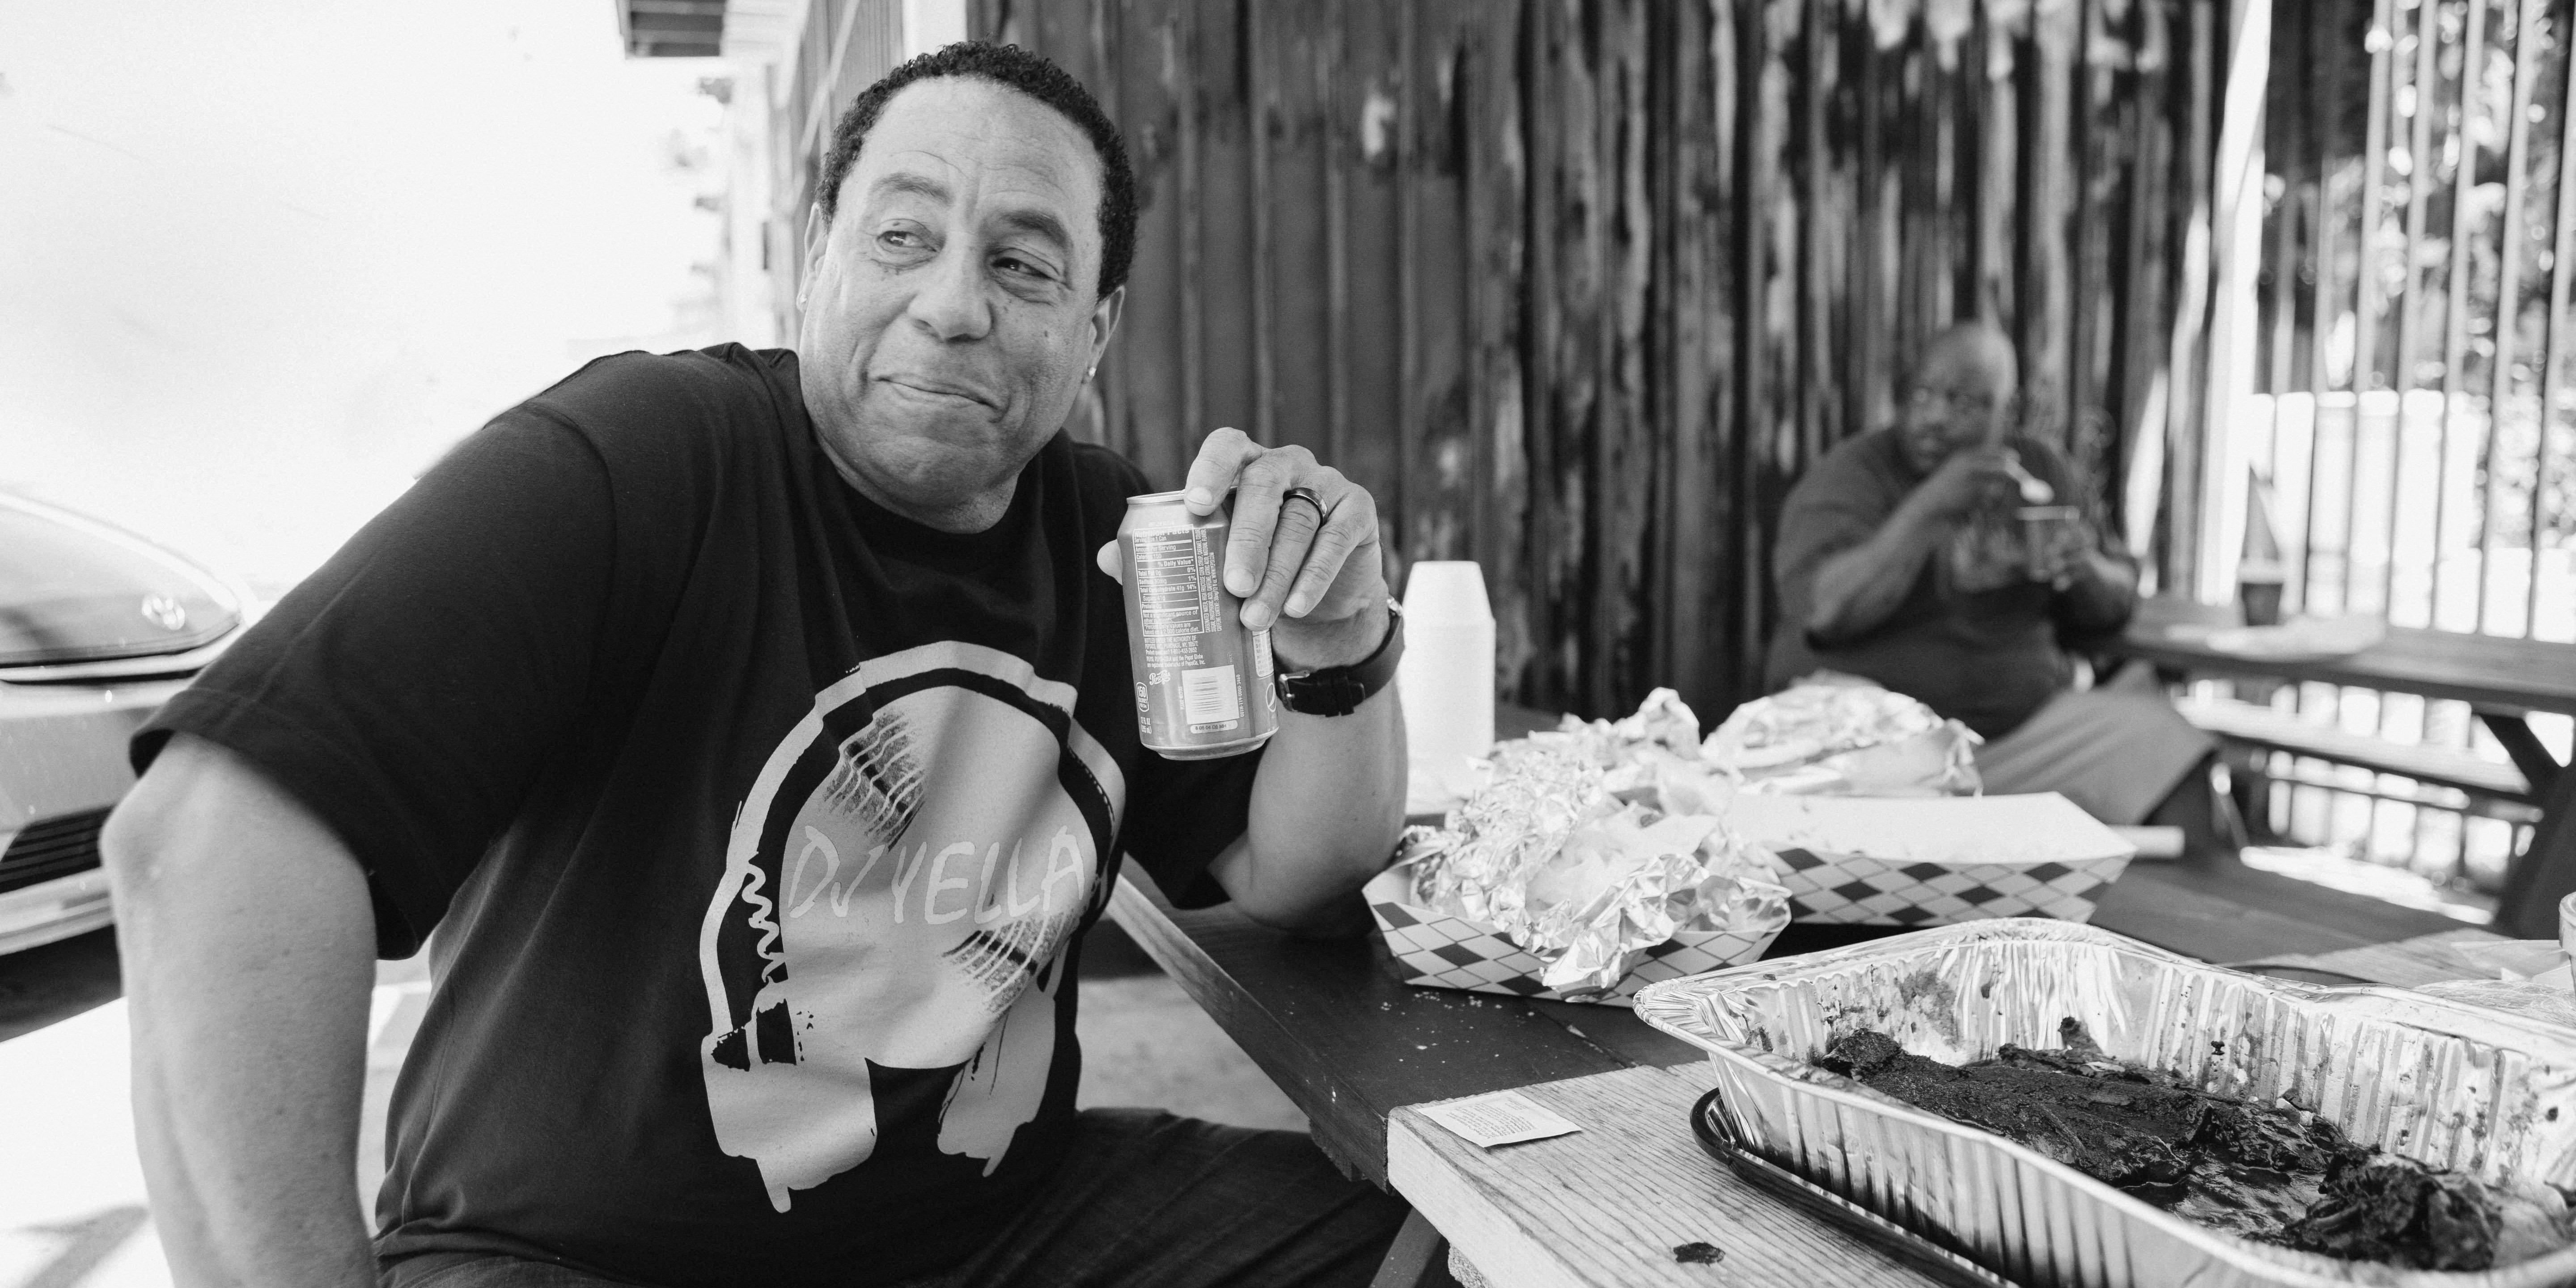 Founding N.W.A member DJ Yella returns to CÉ LA VI for a showcase set